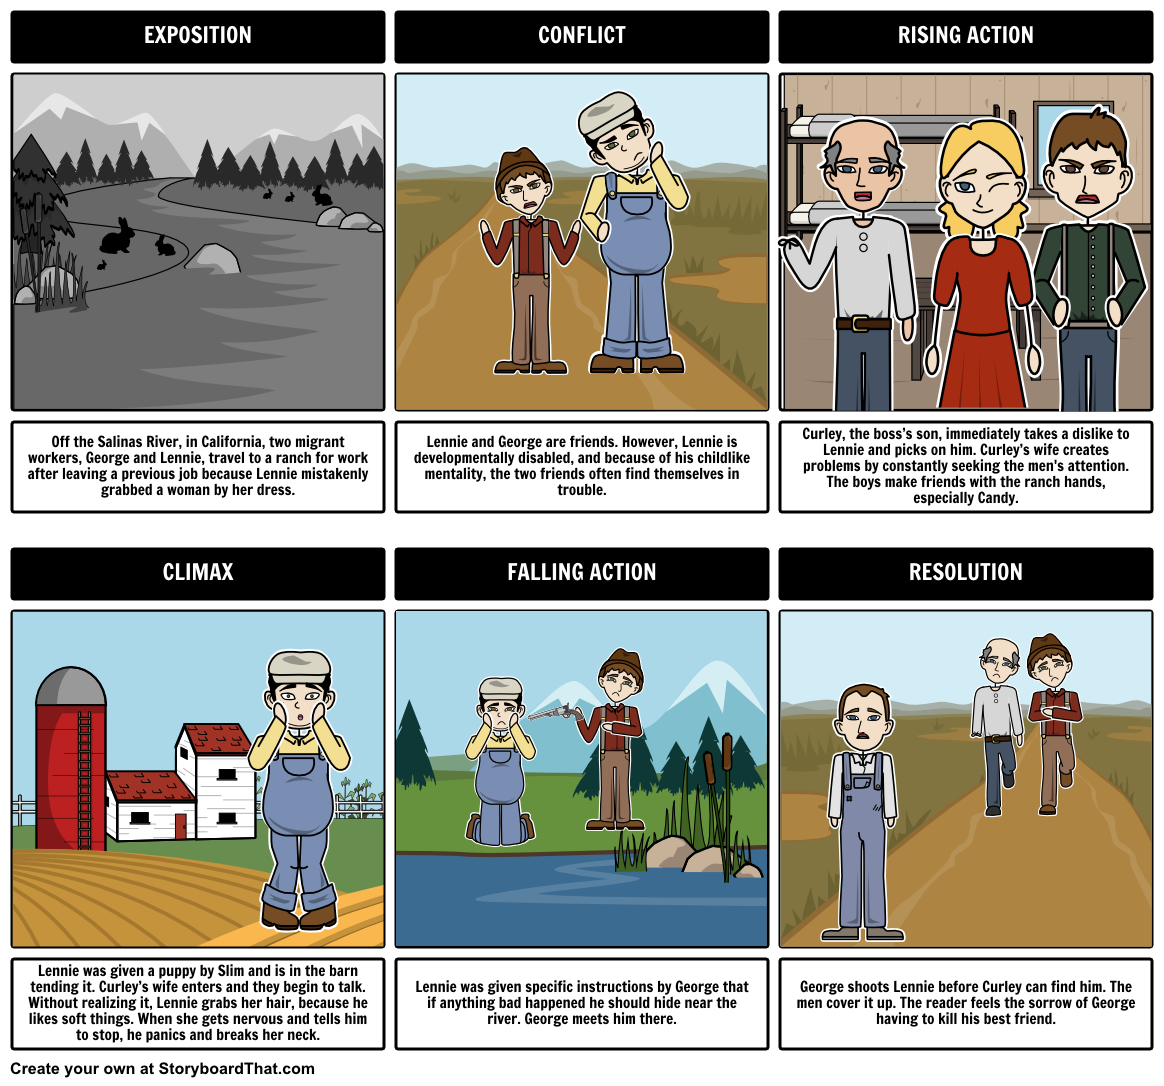 things fall apart plot diagram stapes anatomy create a for of mice and men using storyboard